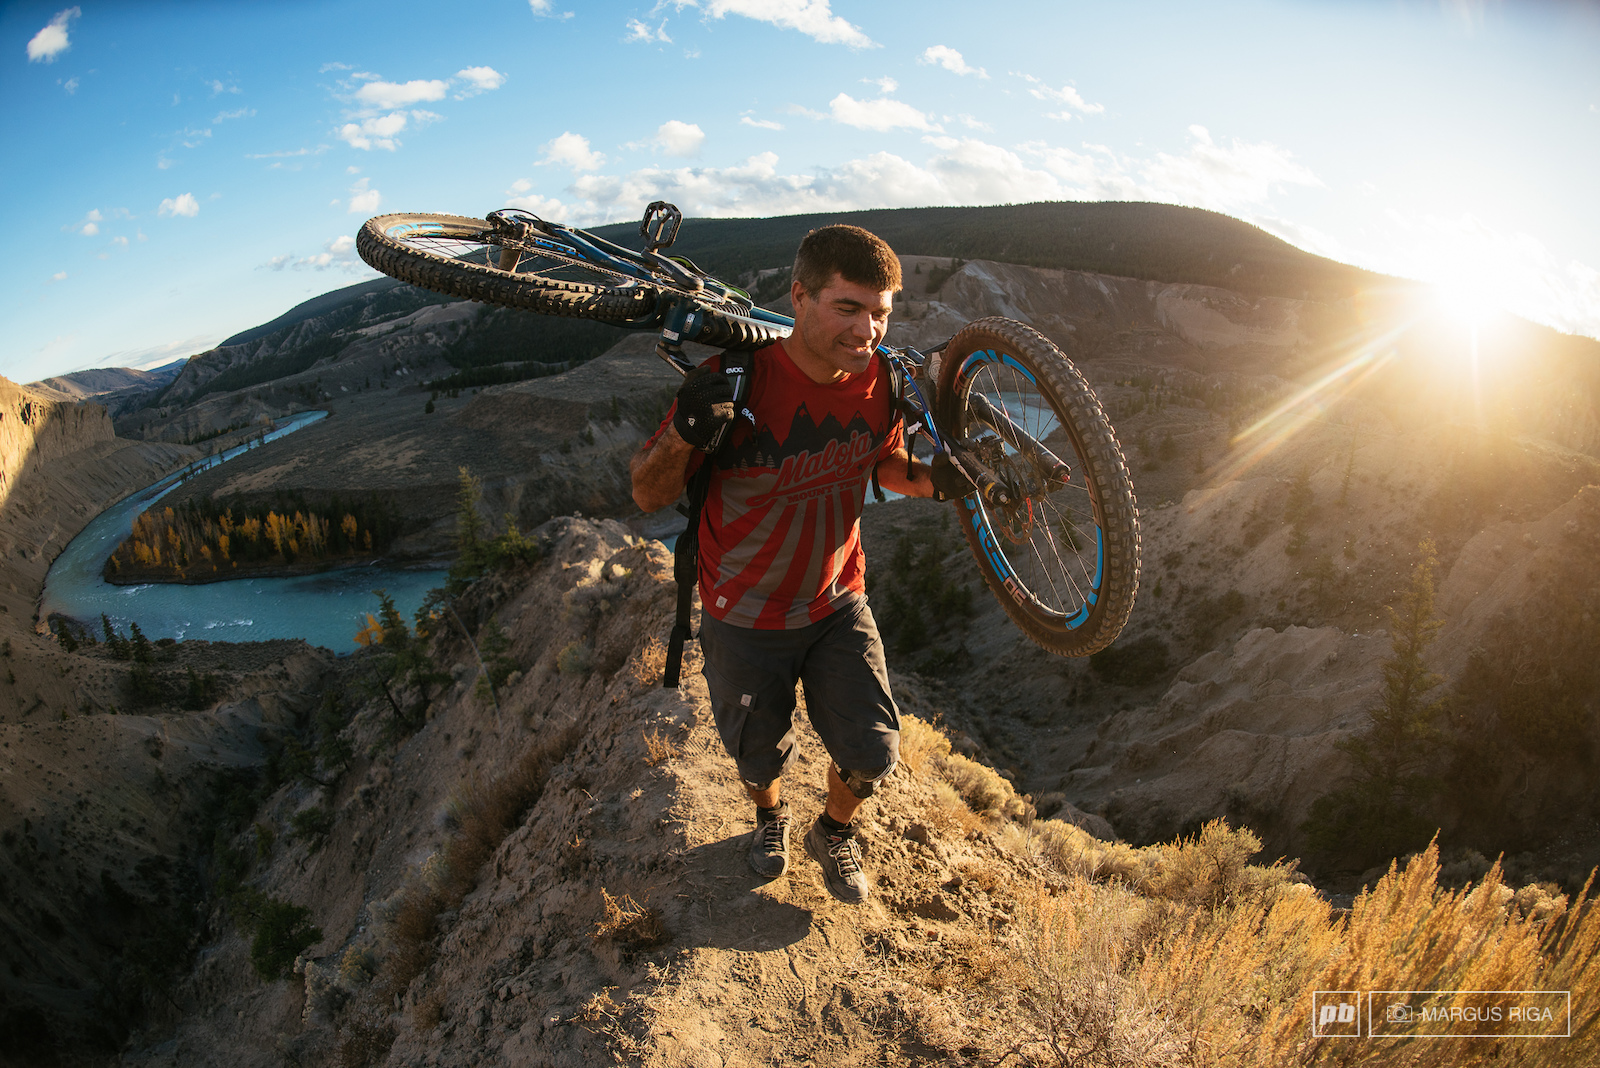 Images by Margus Riga for the Tippie Doerfling and Stowards Generations - Video and Photo Epic